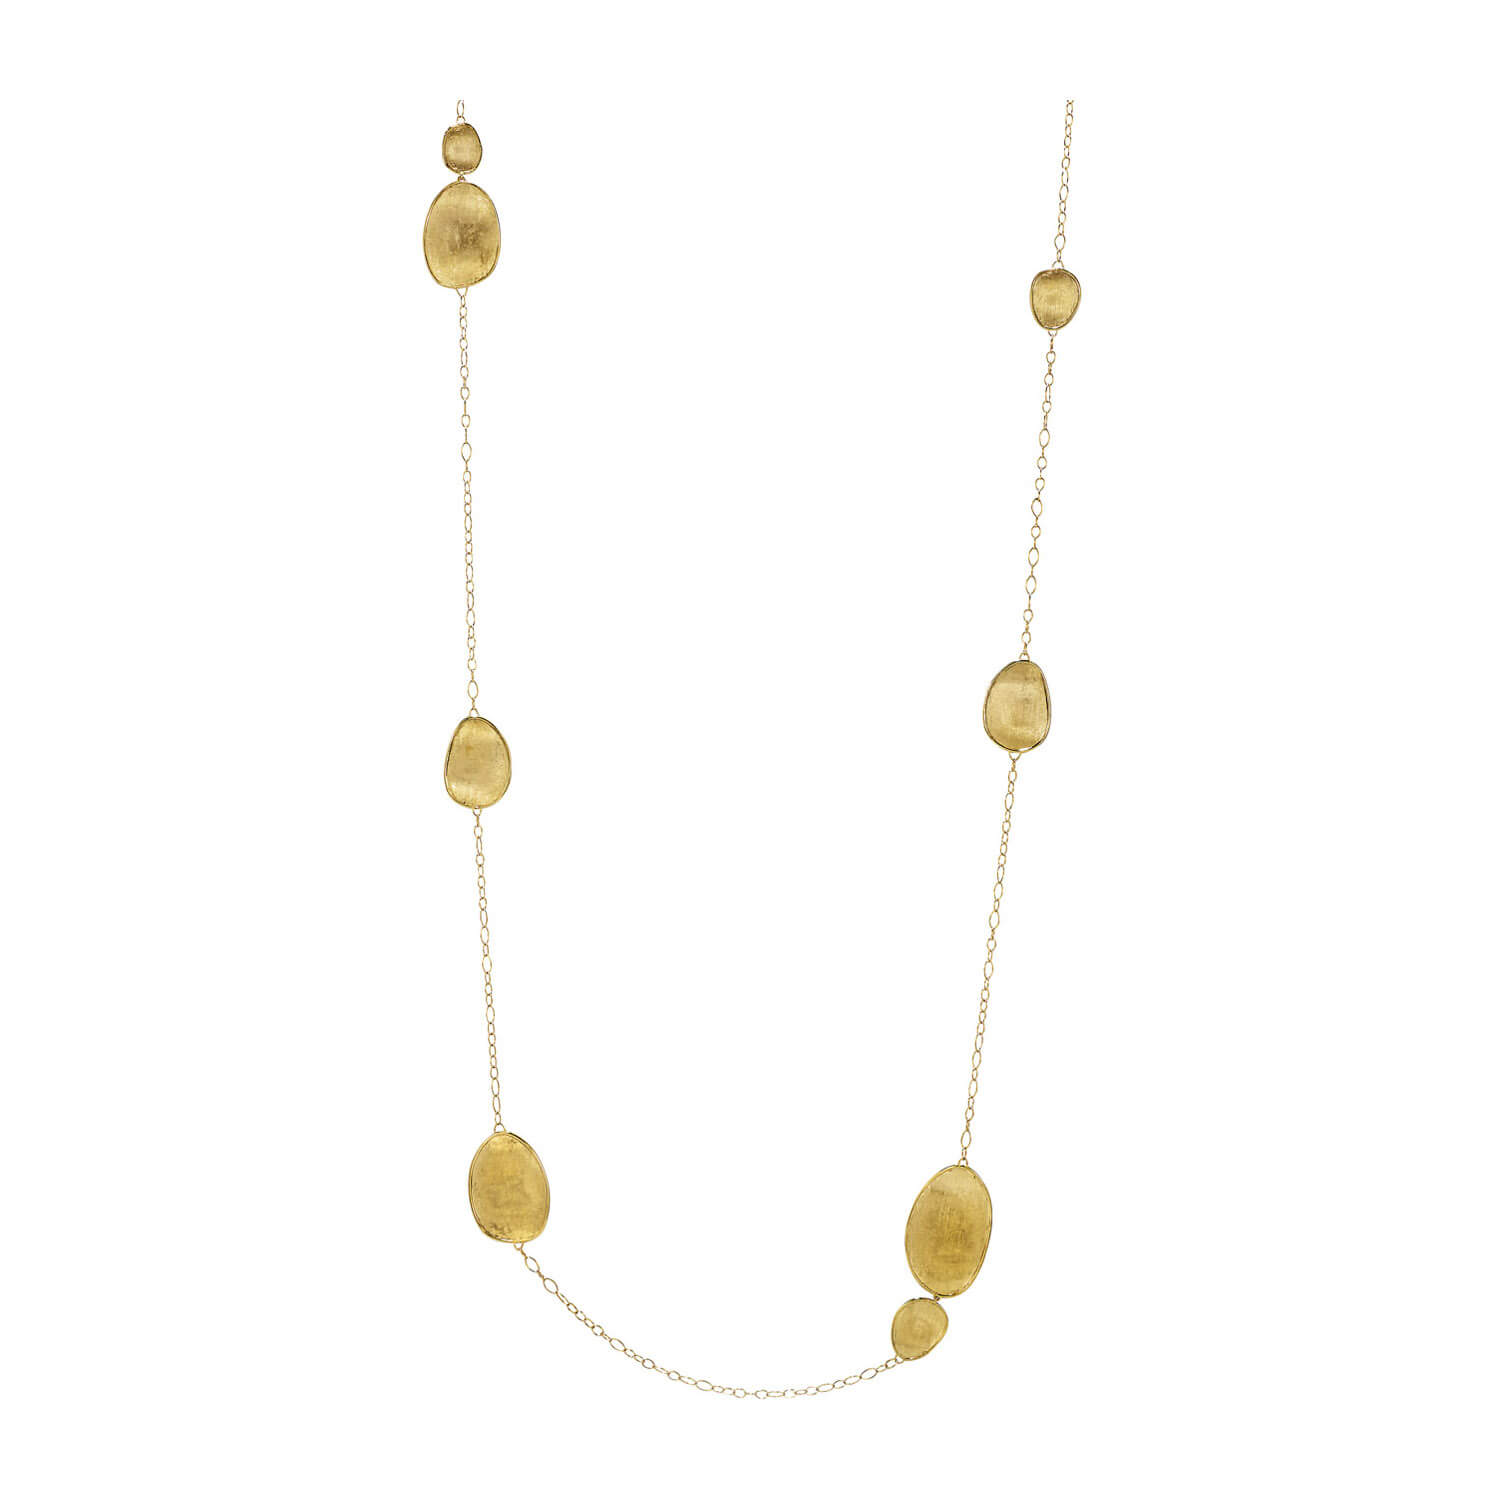 Marco Bicego Lunaria 18ct Yellow Gold Large Chain Necklace